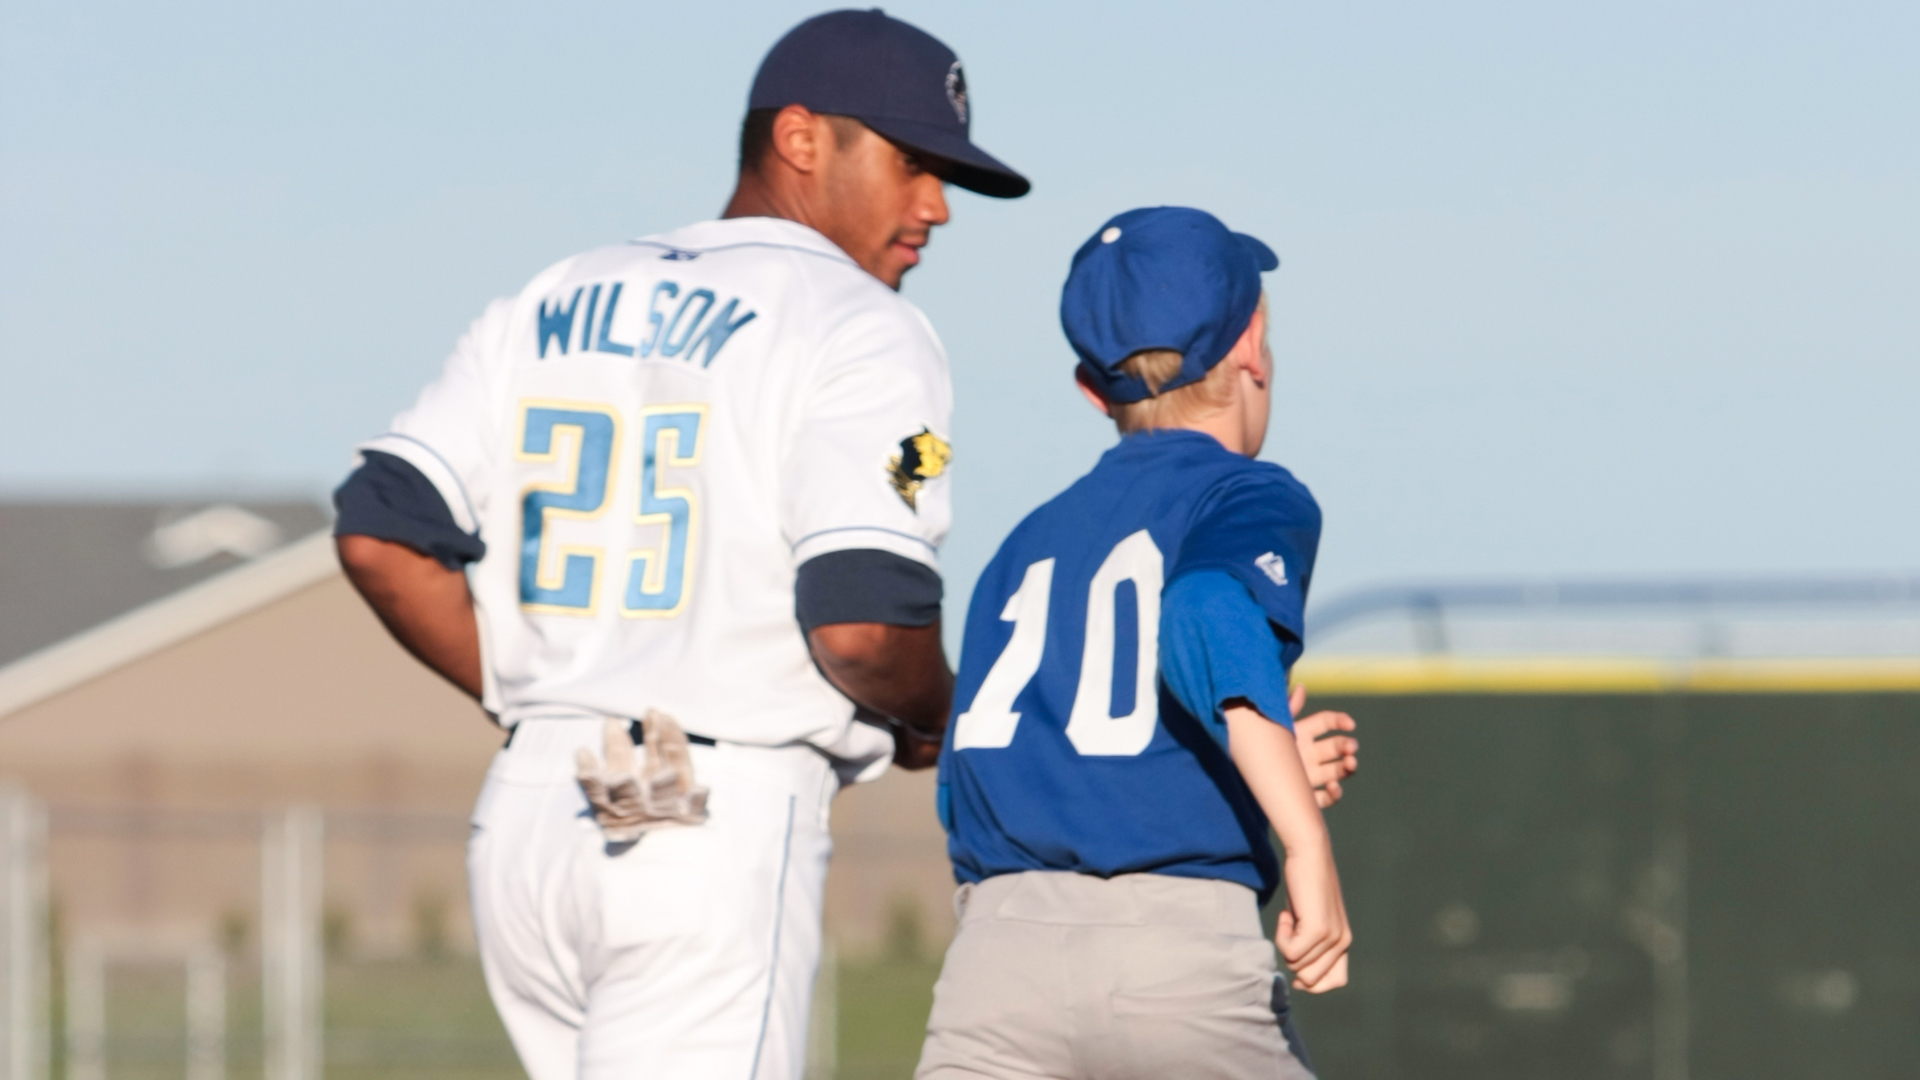 Russell-WIlson-sehawks-baseball-0122315-dustdevils-getty